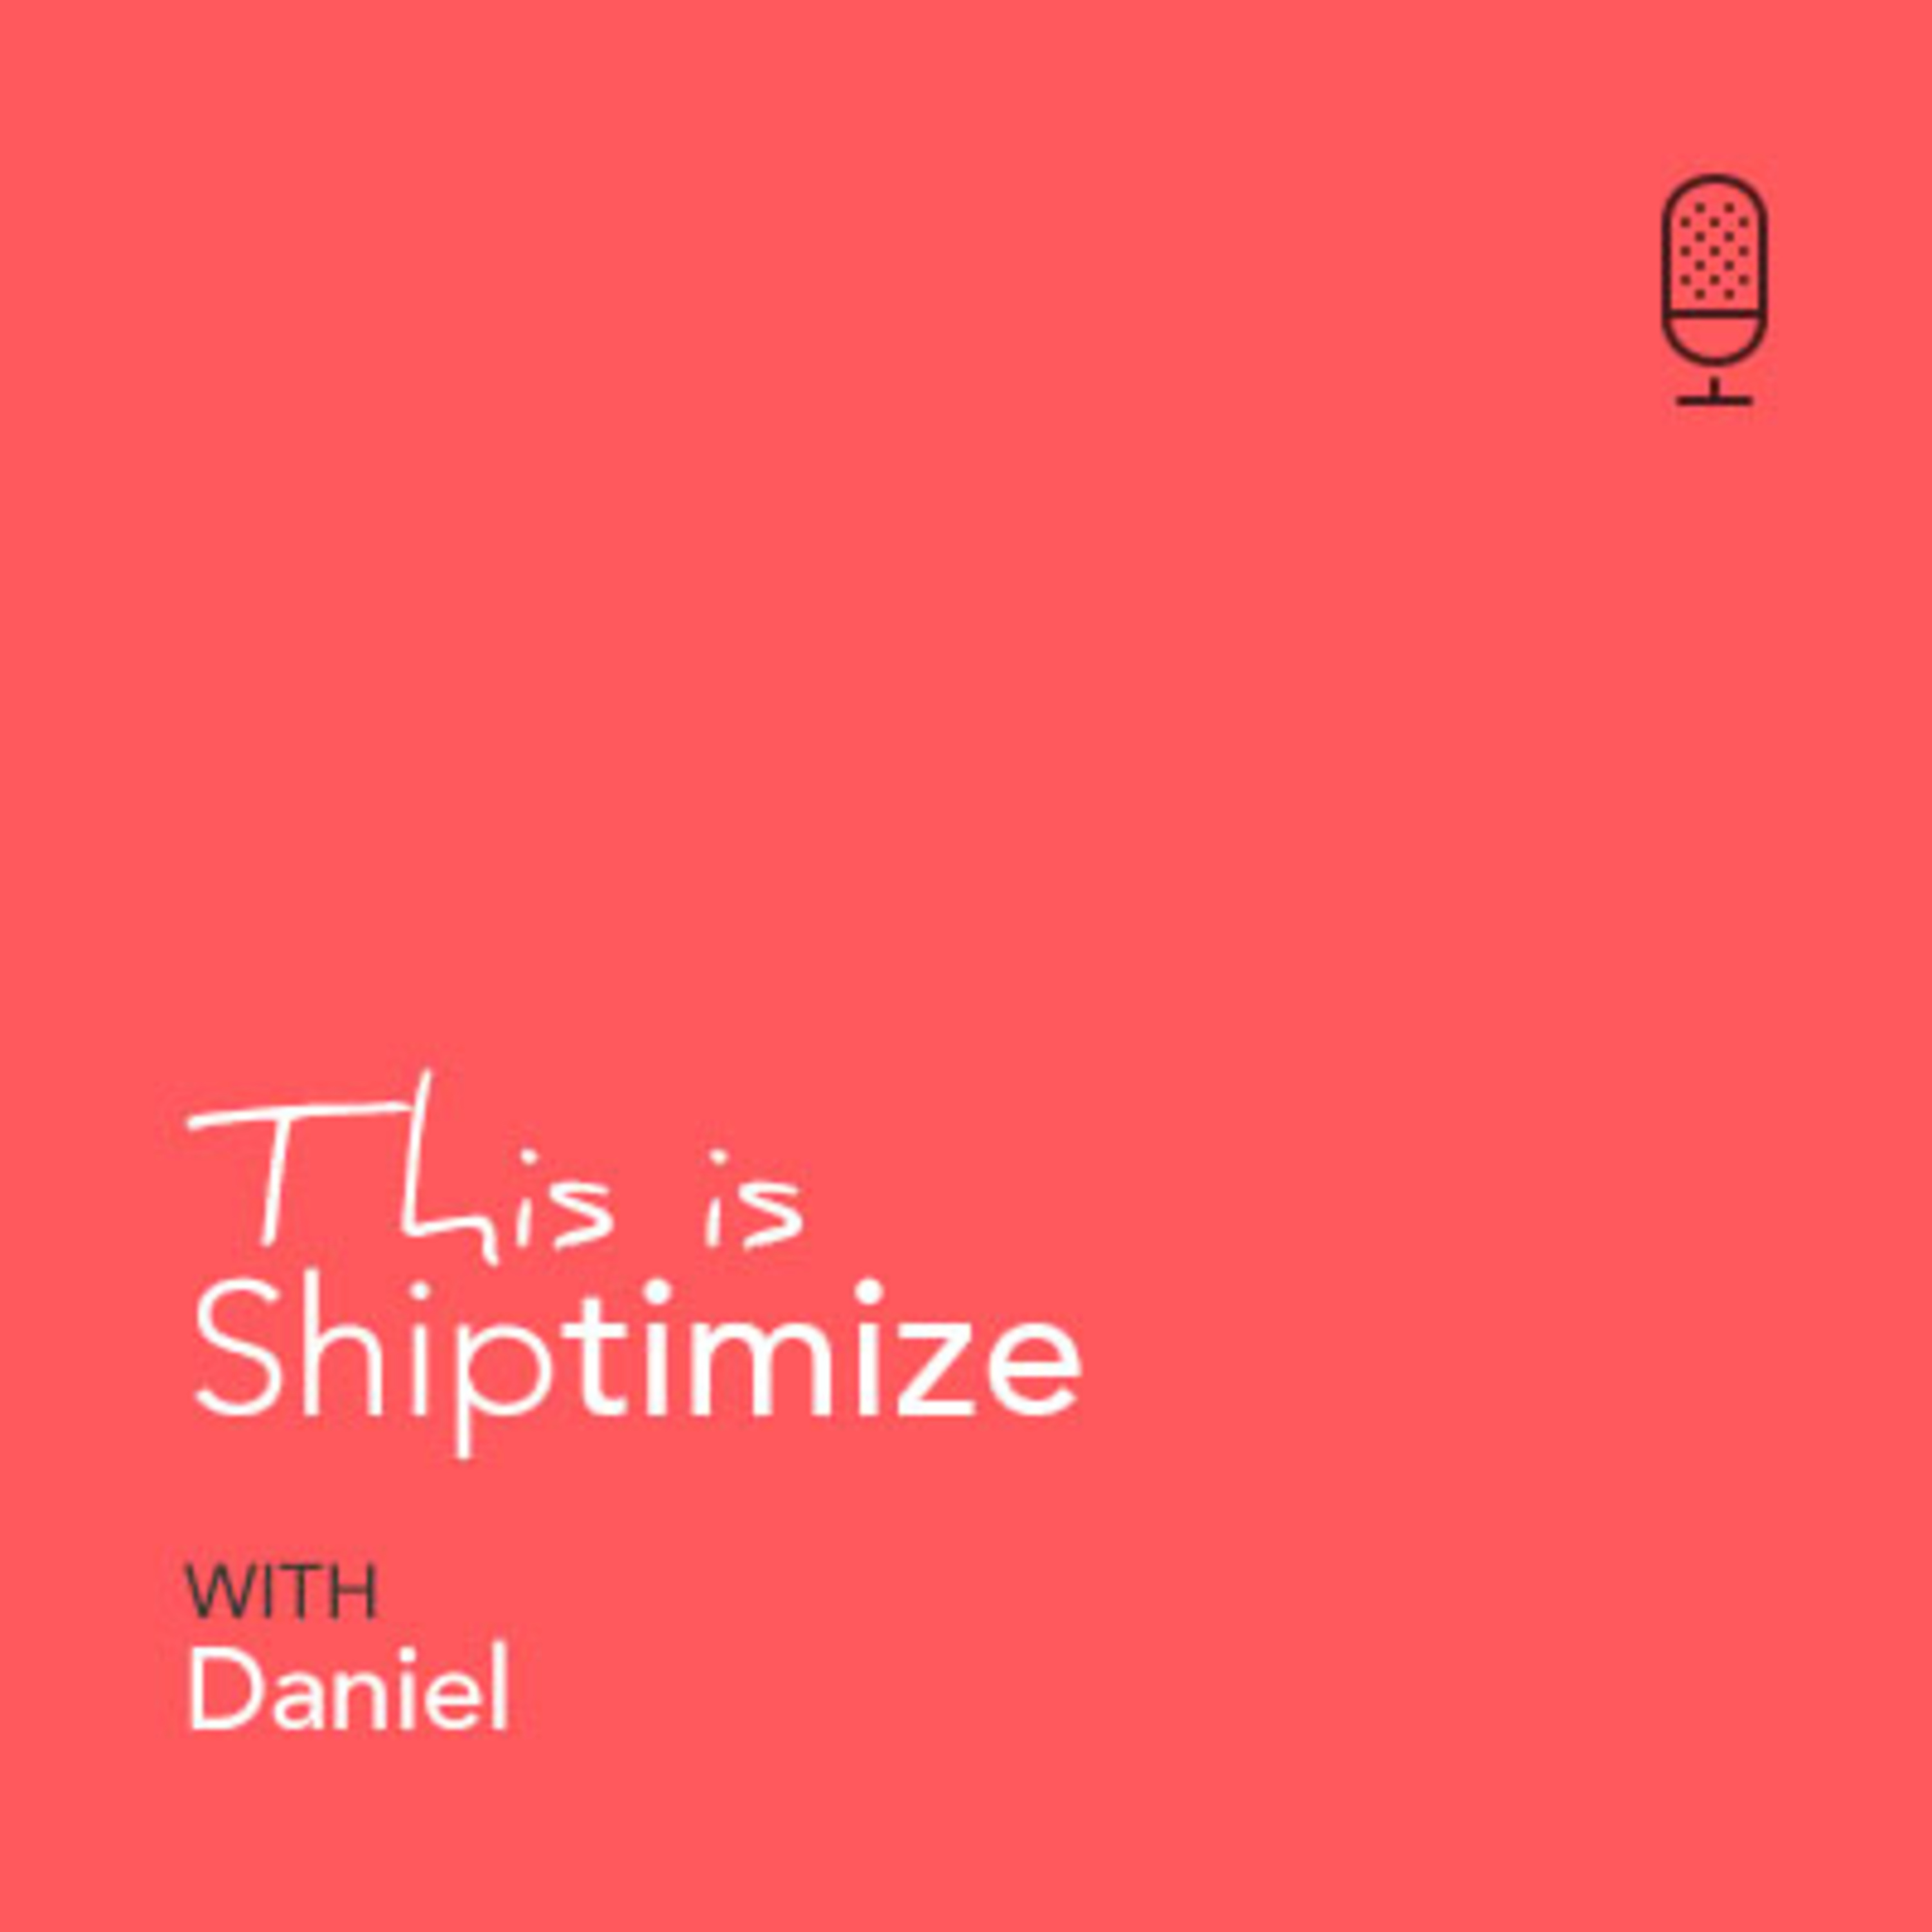 This is Shiptimize: Meet Daniel